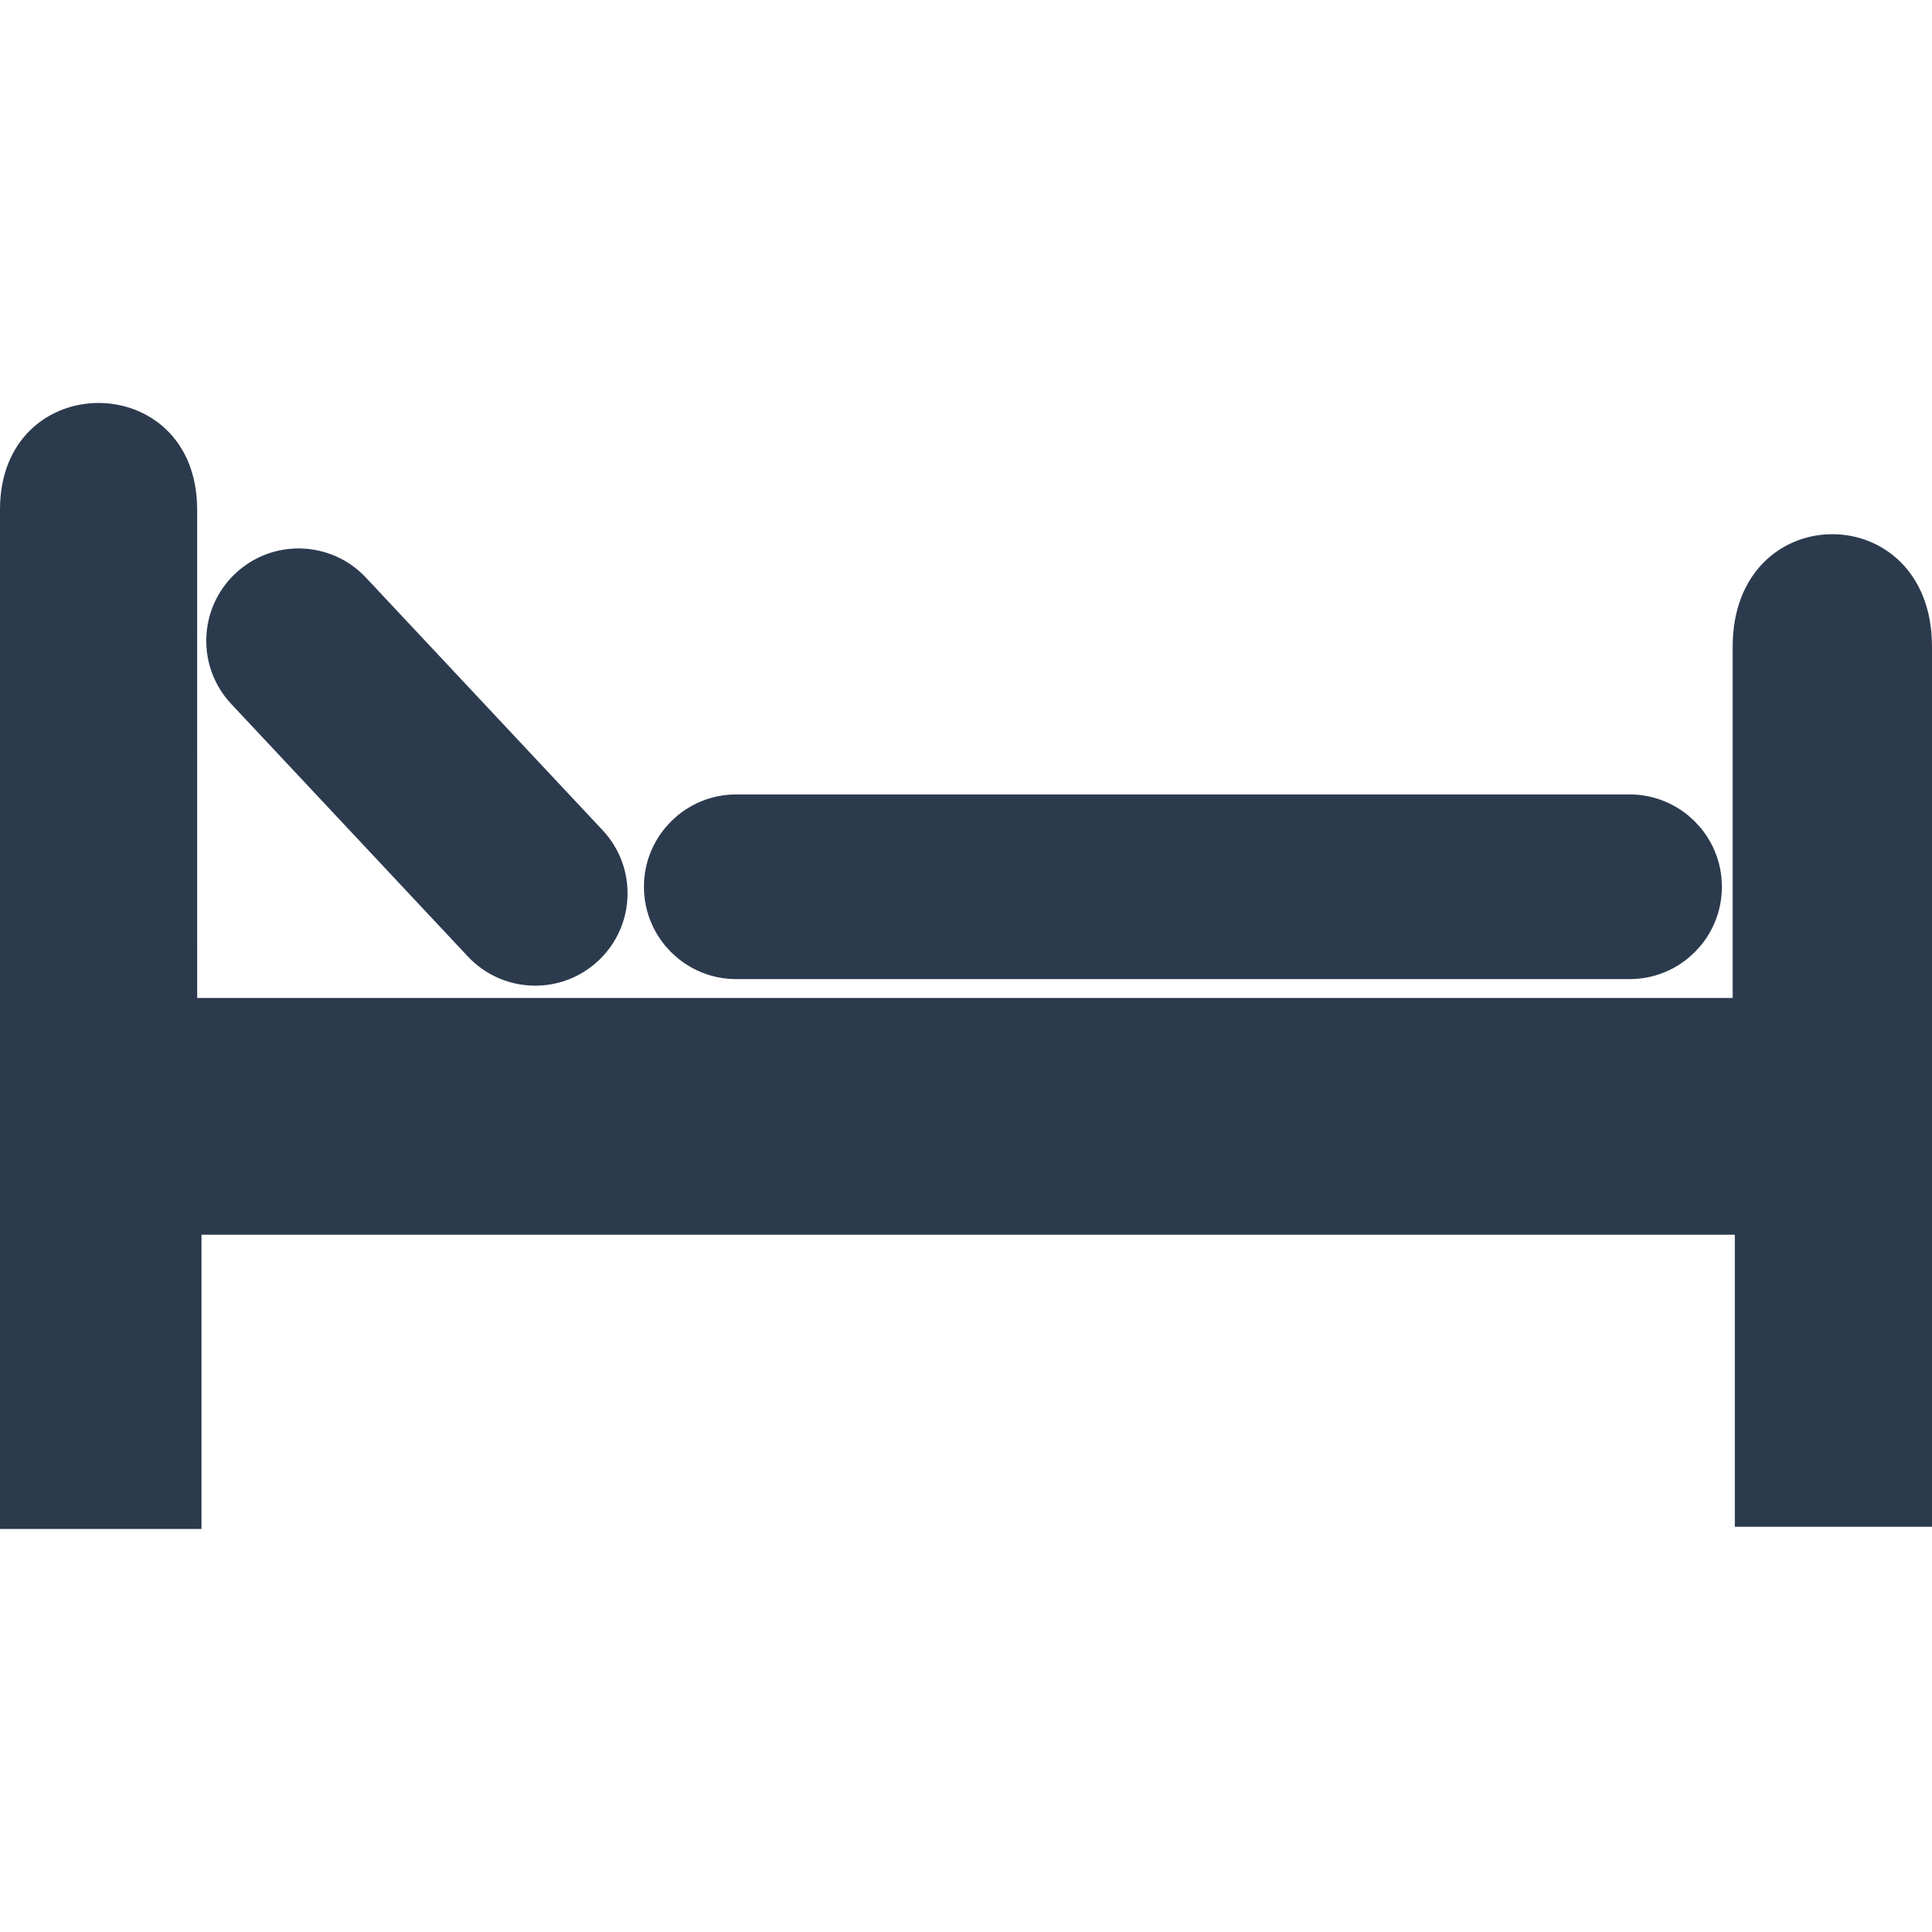 2400x2400 Free Clipart Simple Bed Image